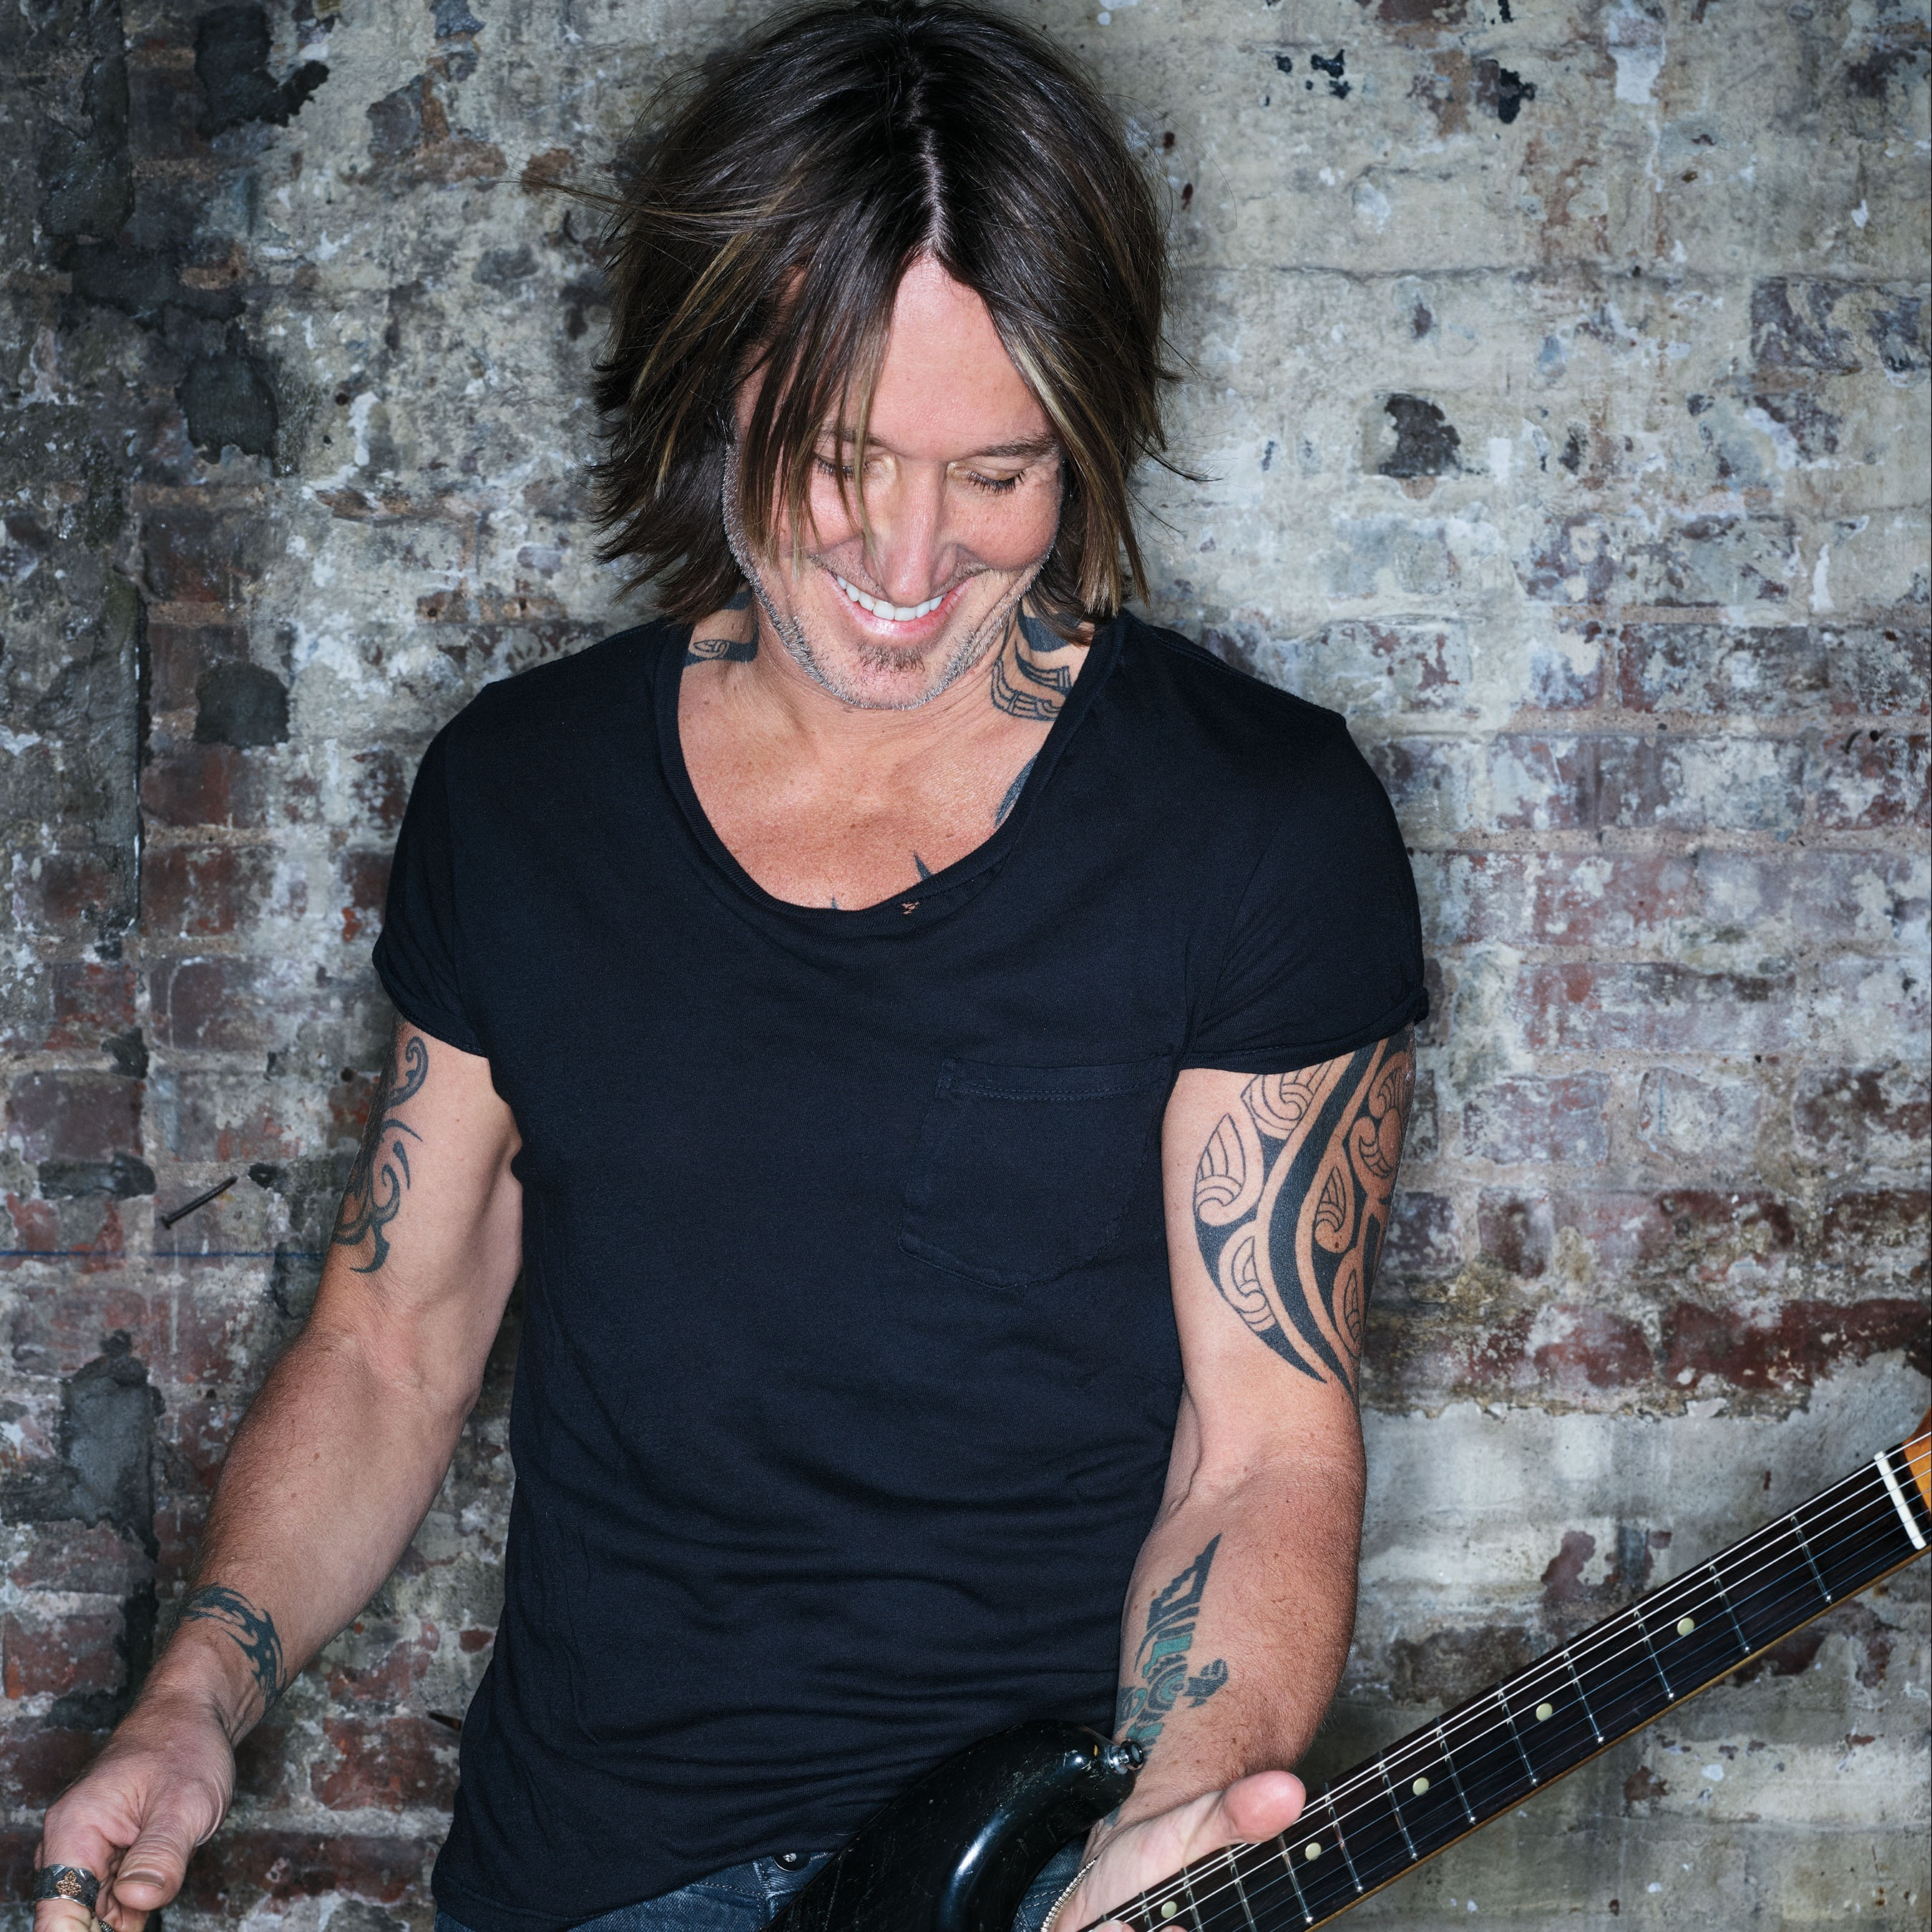 KEITH URBAN MAKES SPECIAL APPEARANCES AT NOT ONE, BUT TWO COUNTRY SHOWS ON THE SAME NIGHT.